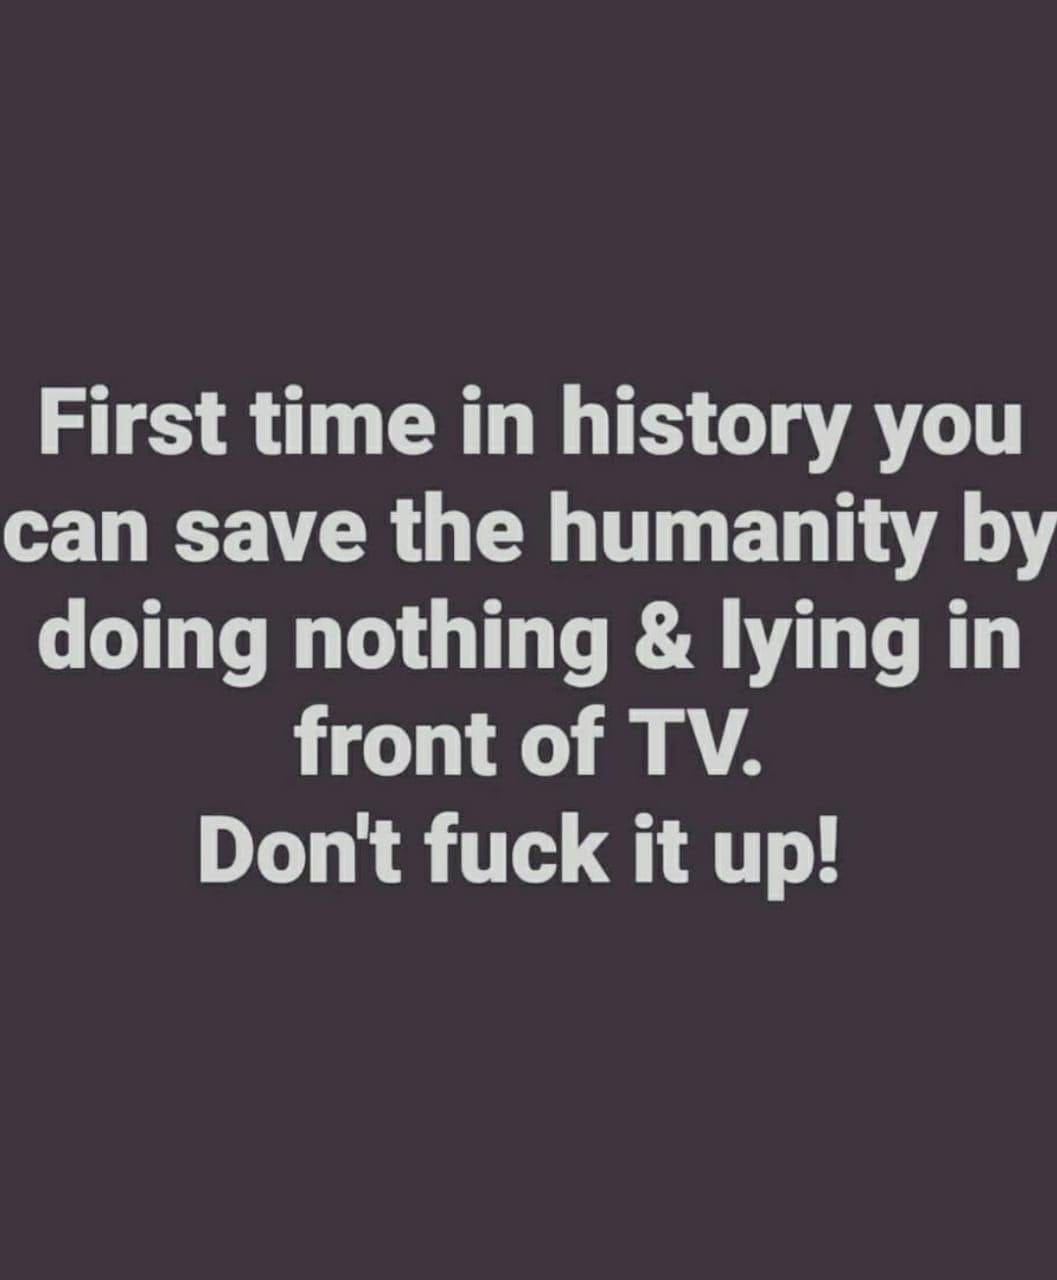 Save humanity by doing nothing